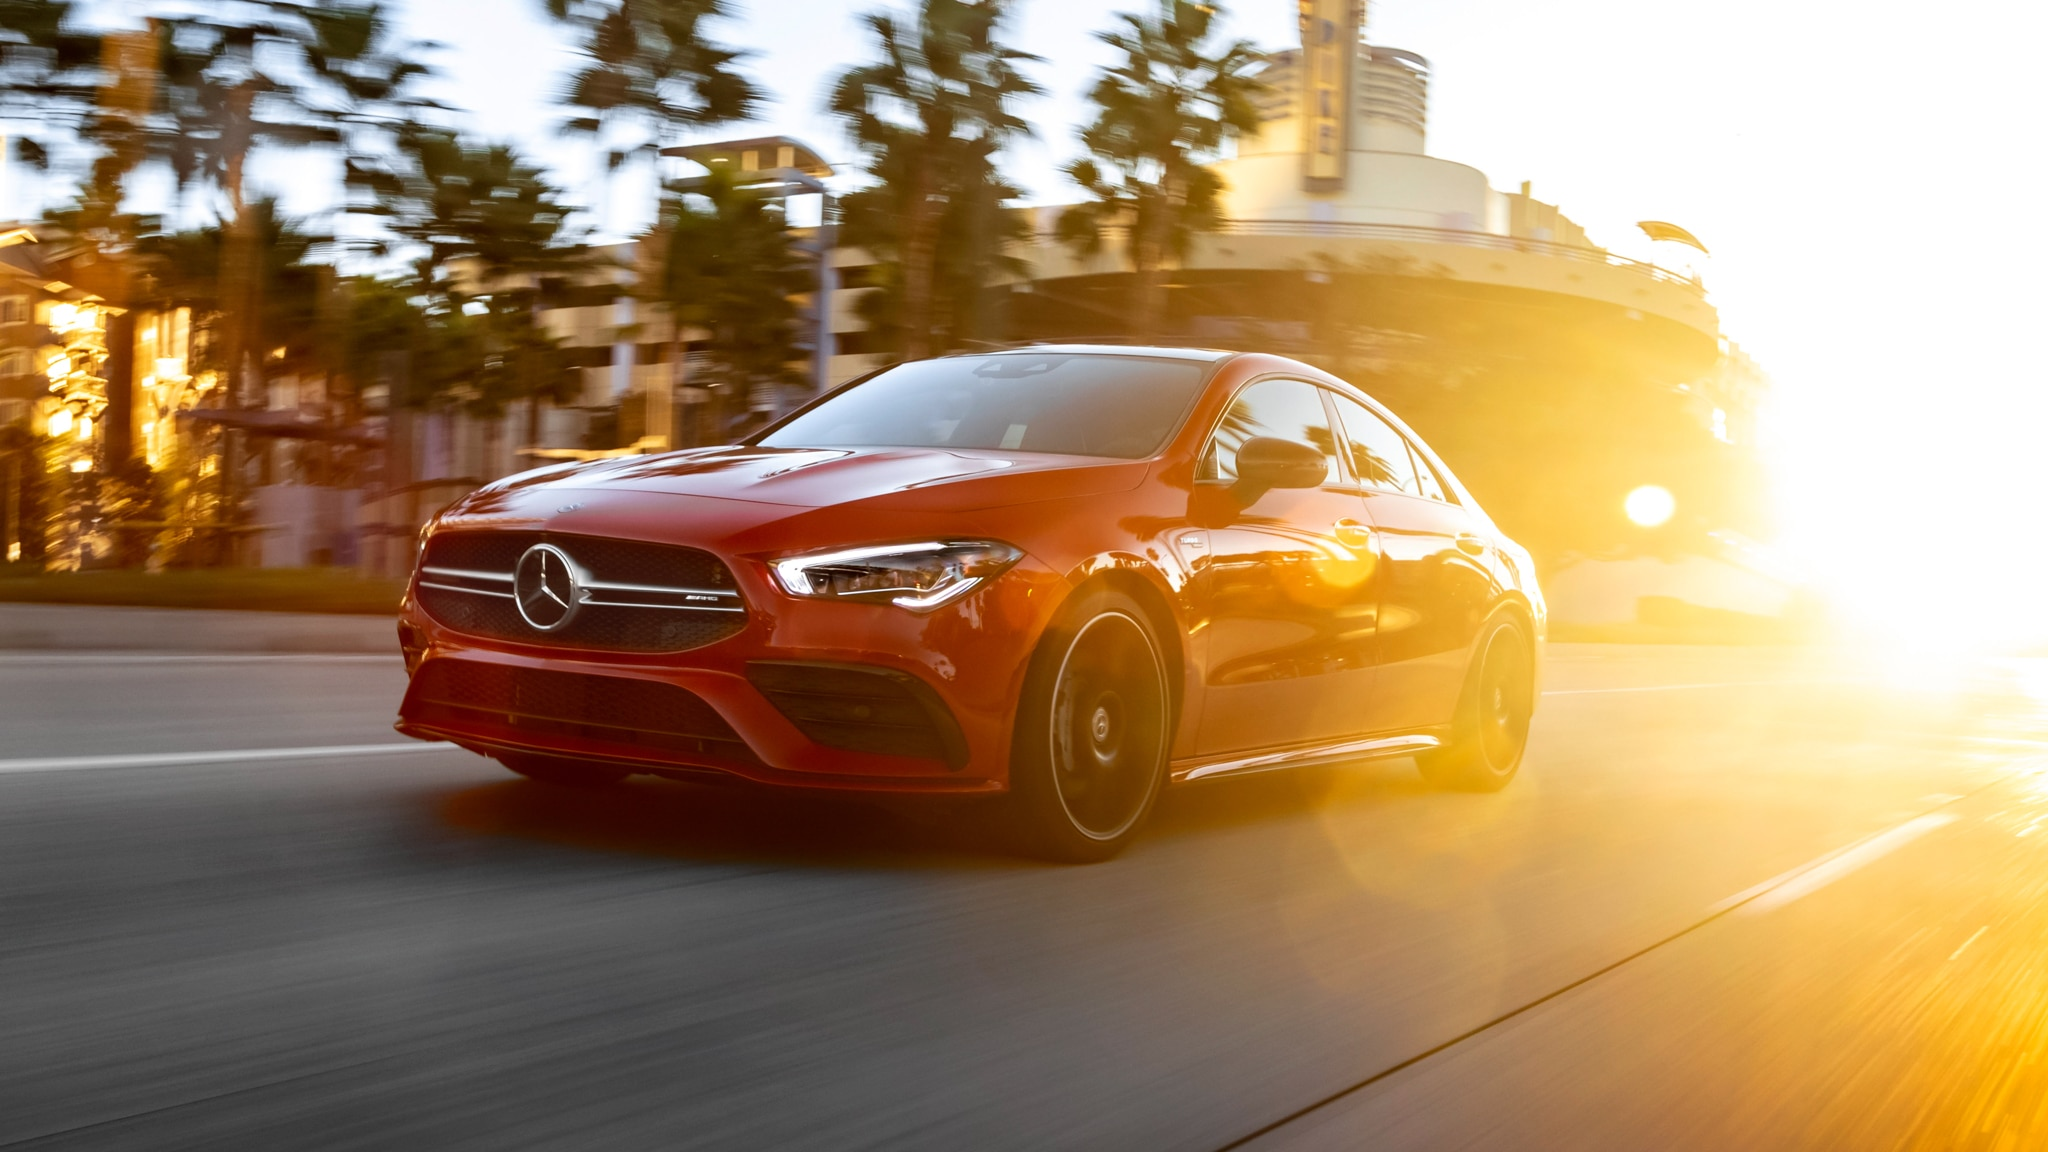 2020 Mercedes-AMG CLA35 First Drive Review: Try Another Gate